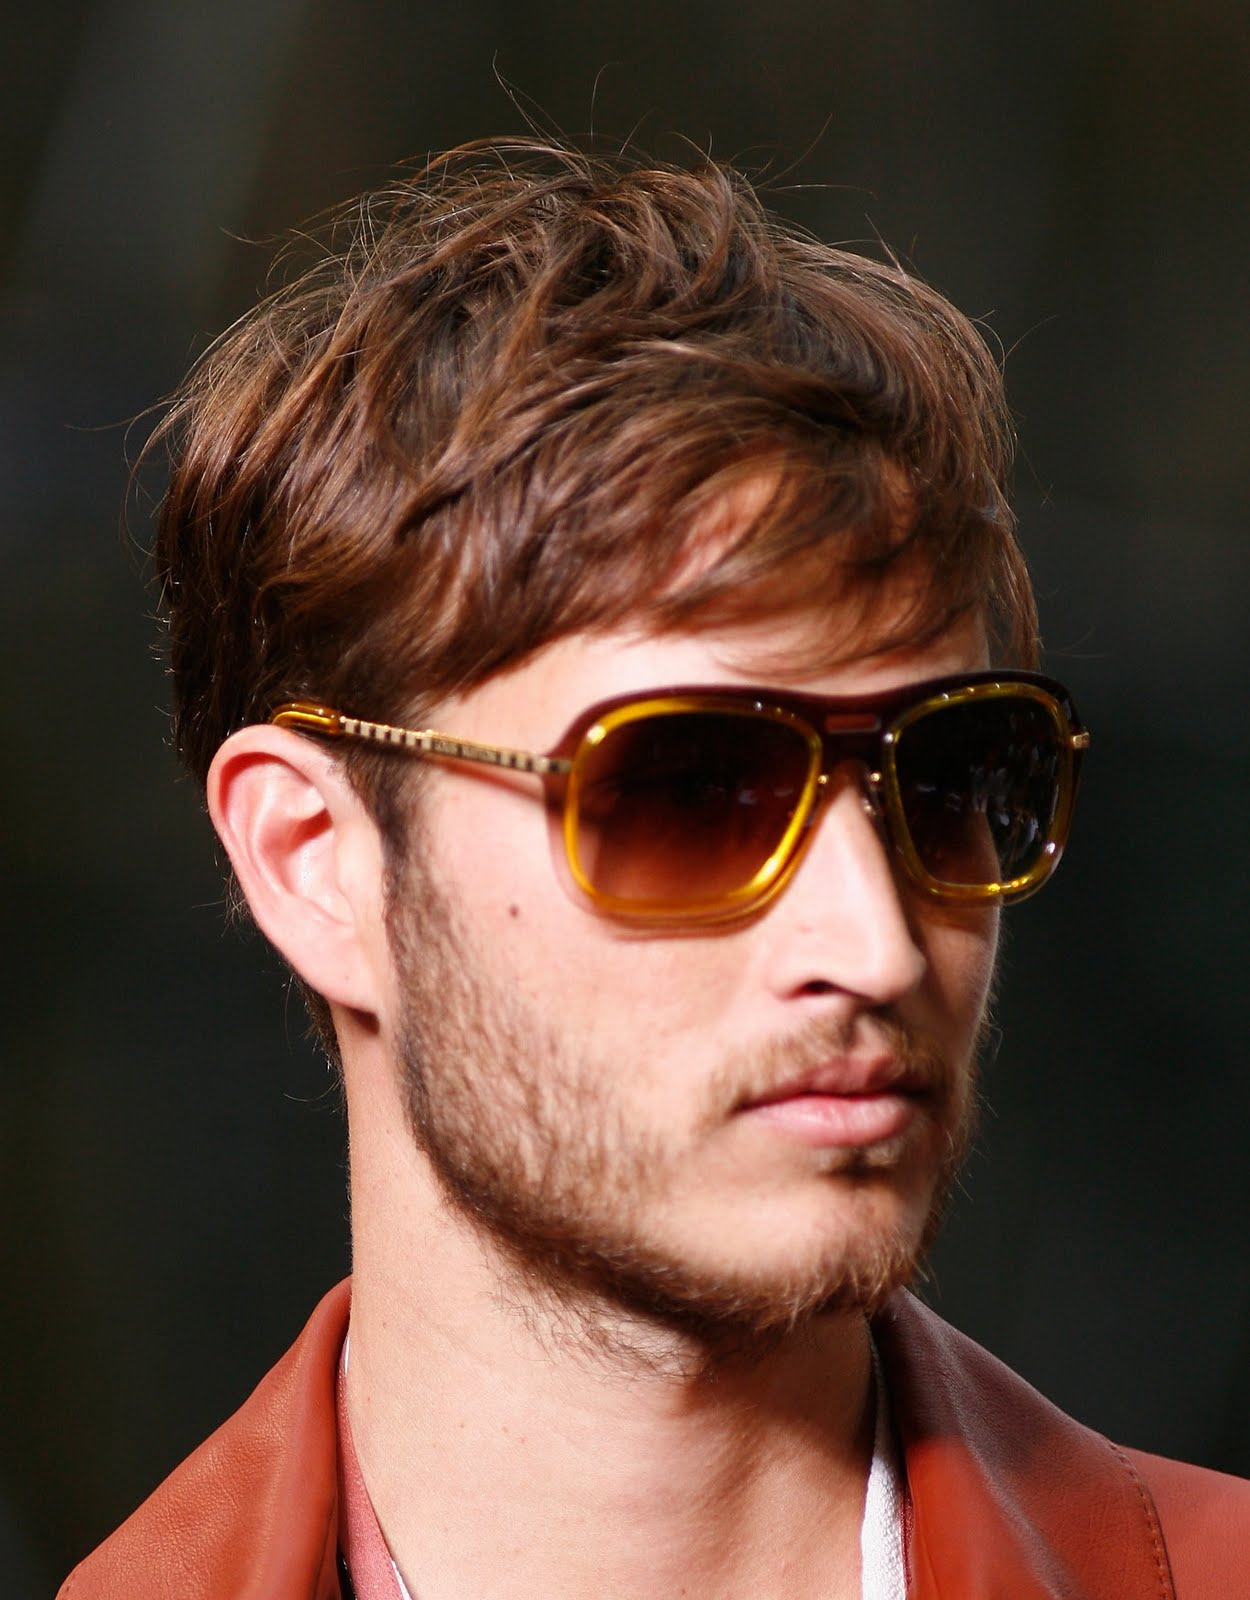 Hairstyles 2010 for Men